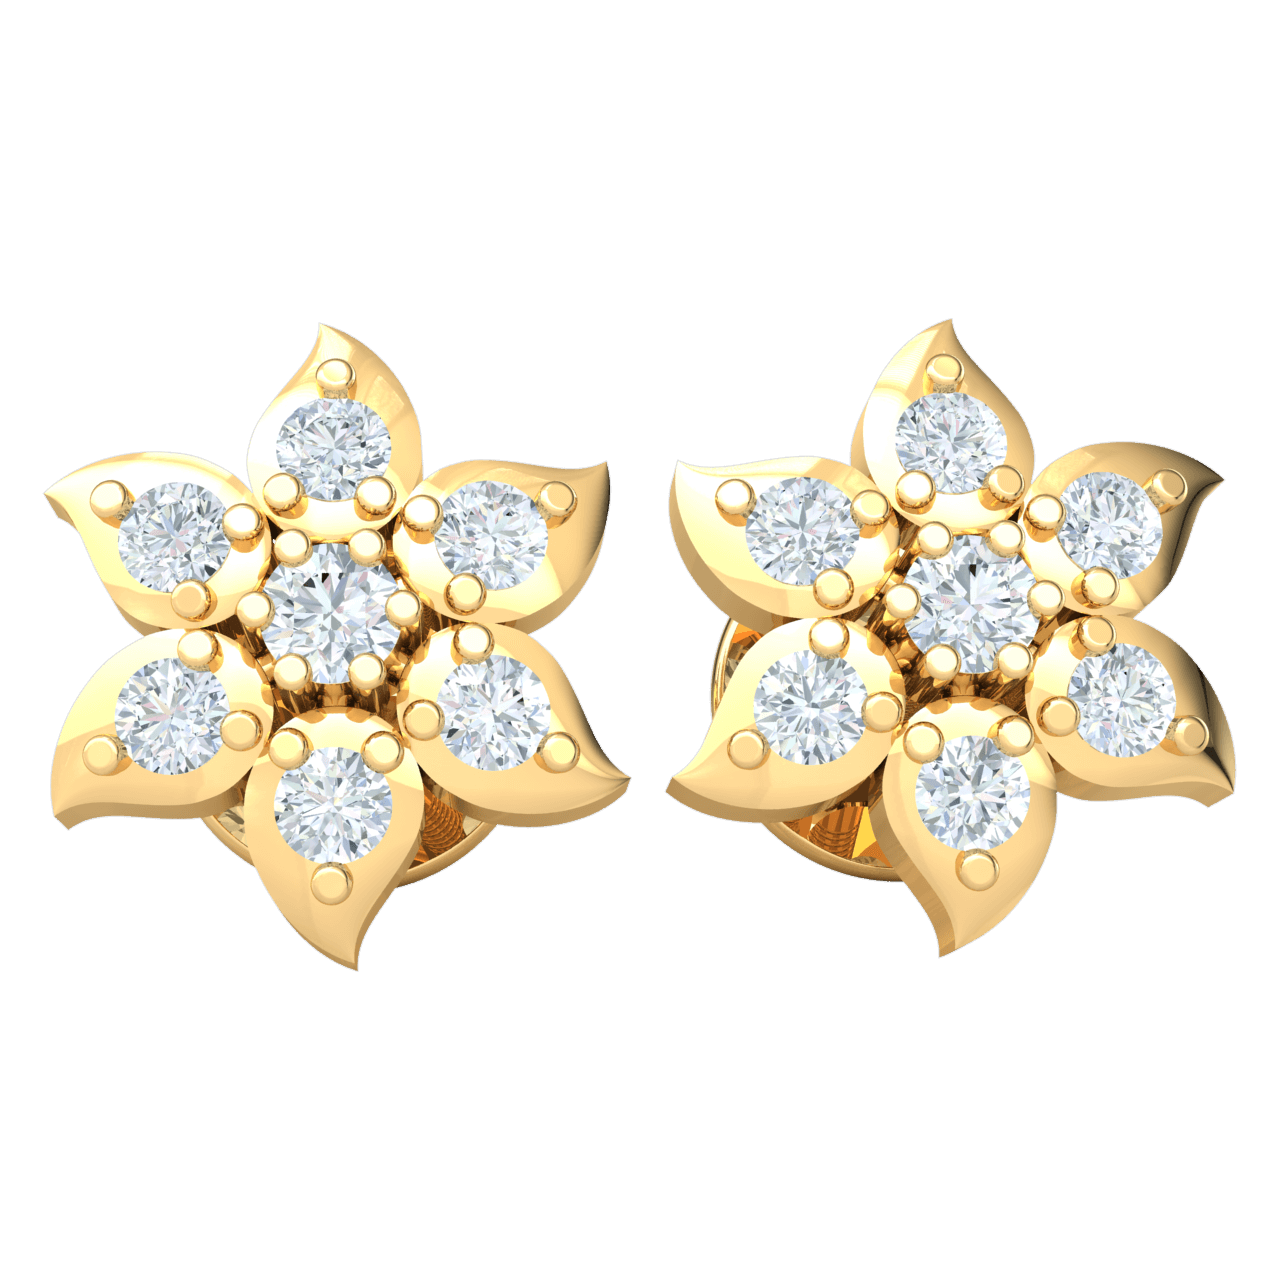 0.20 Ctw Sparkling And Whimsical Real Stud Earrings With Beautifully Displayed 7 Stone White Diamonds in JK I1 10 kt Gold